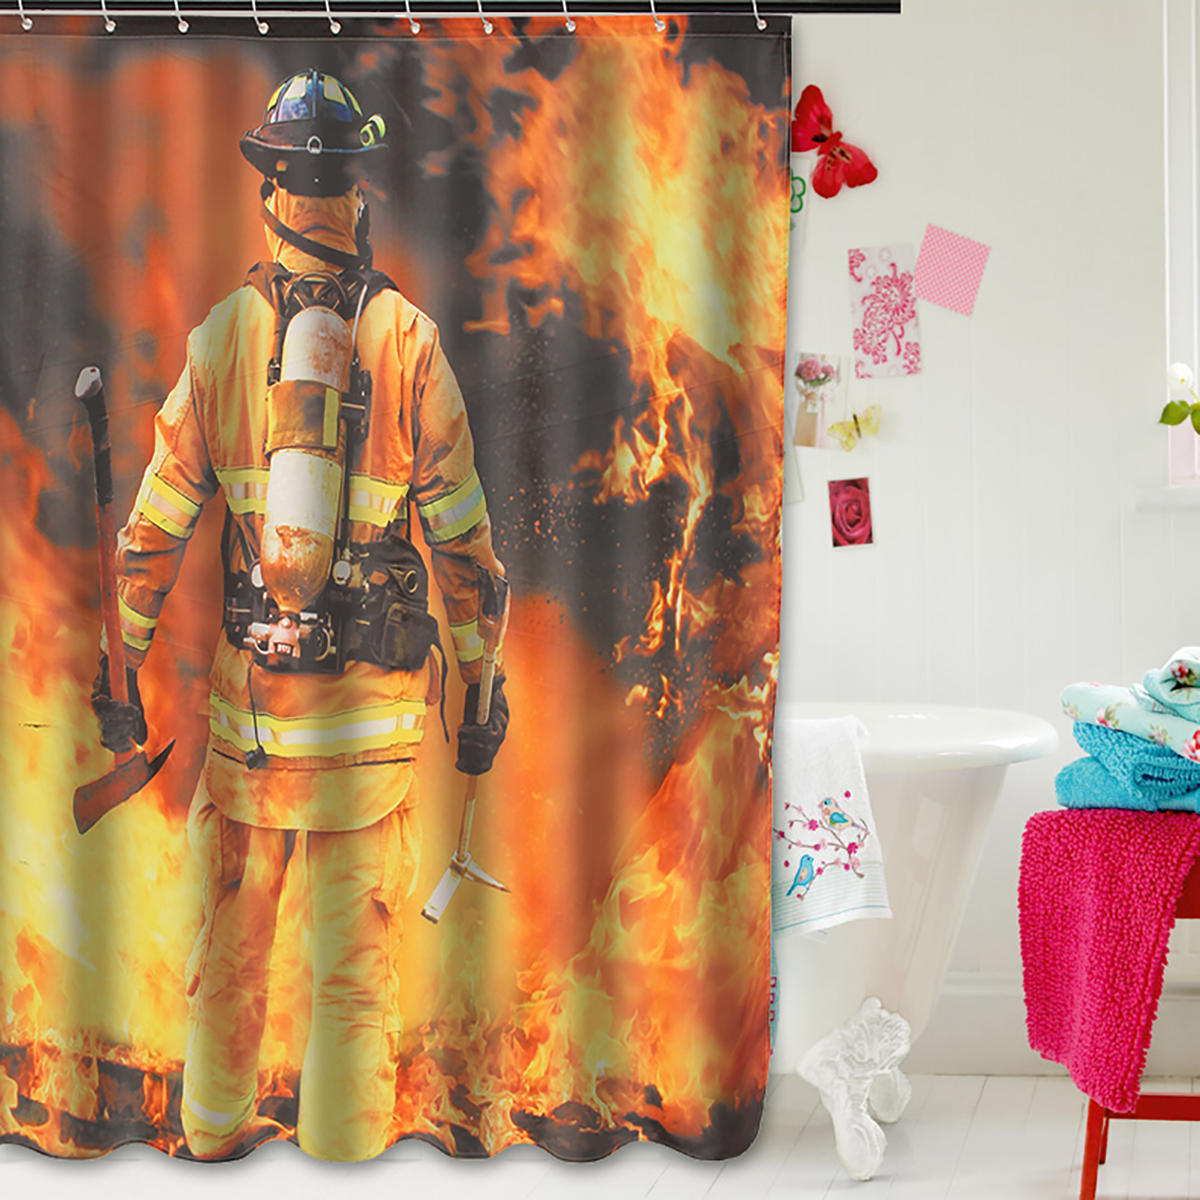 Waterproof Polyester Fabric Shower Curtain Firemen Design Bathroom Home Decoration